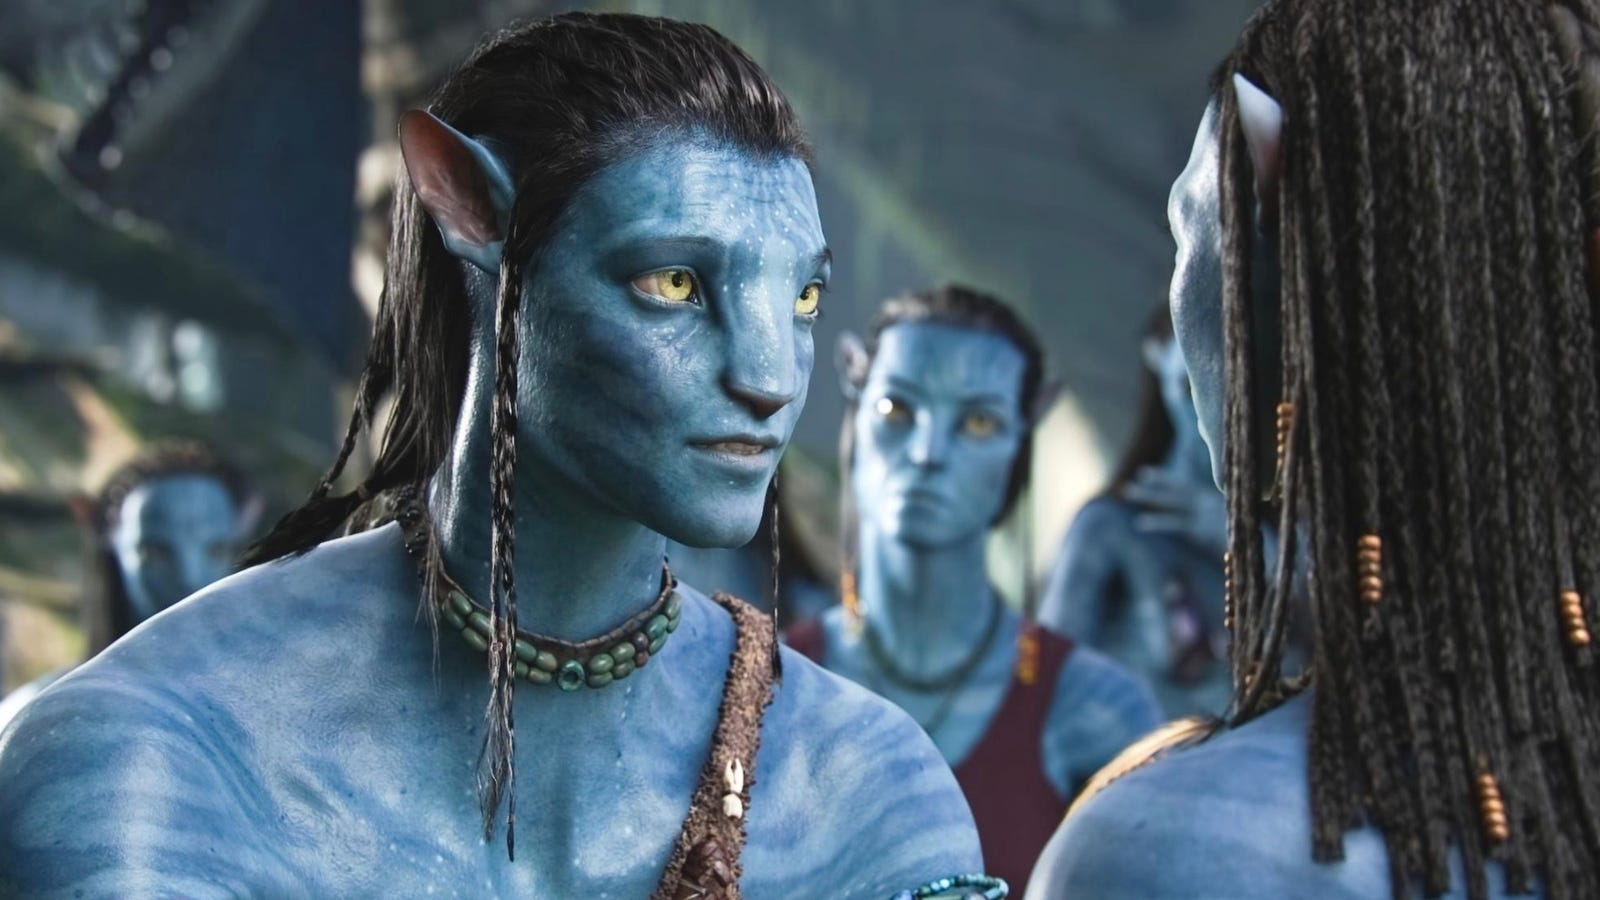 Avatar: Avatar 2's Cast Learned To Hold Their Breaths For Extended